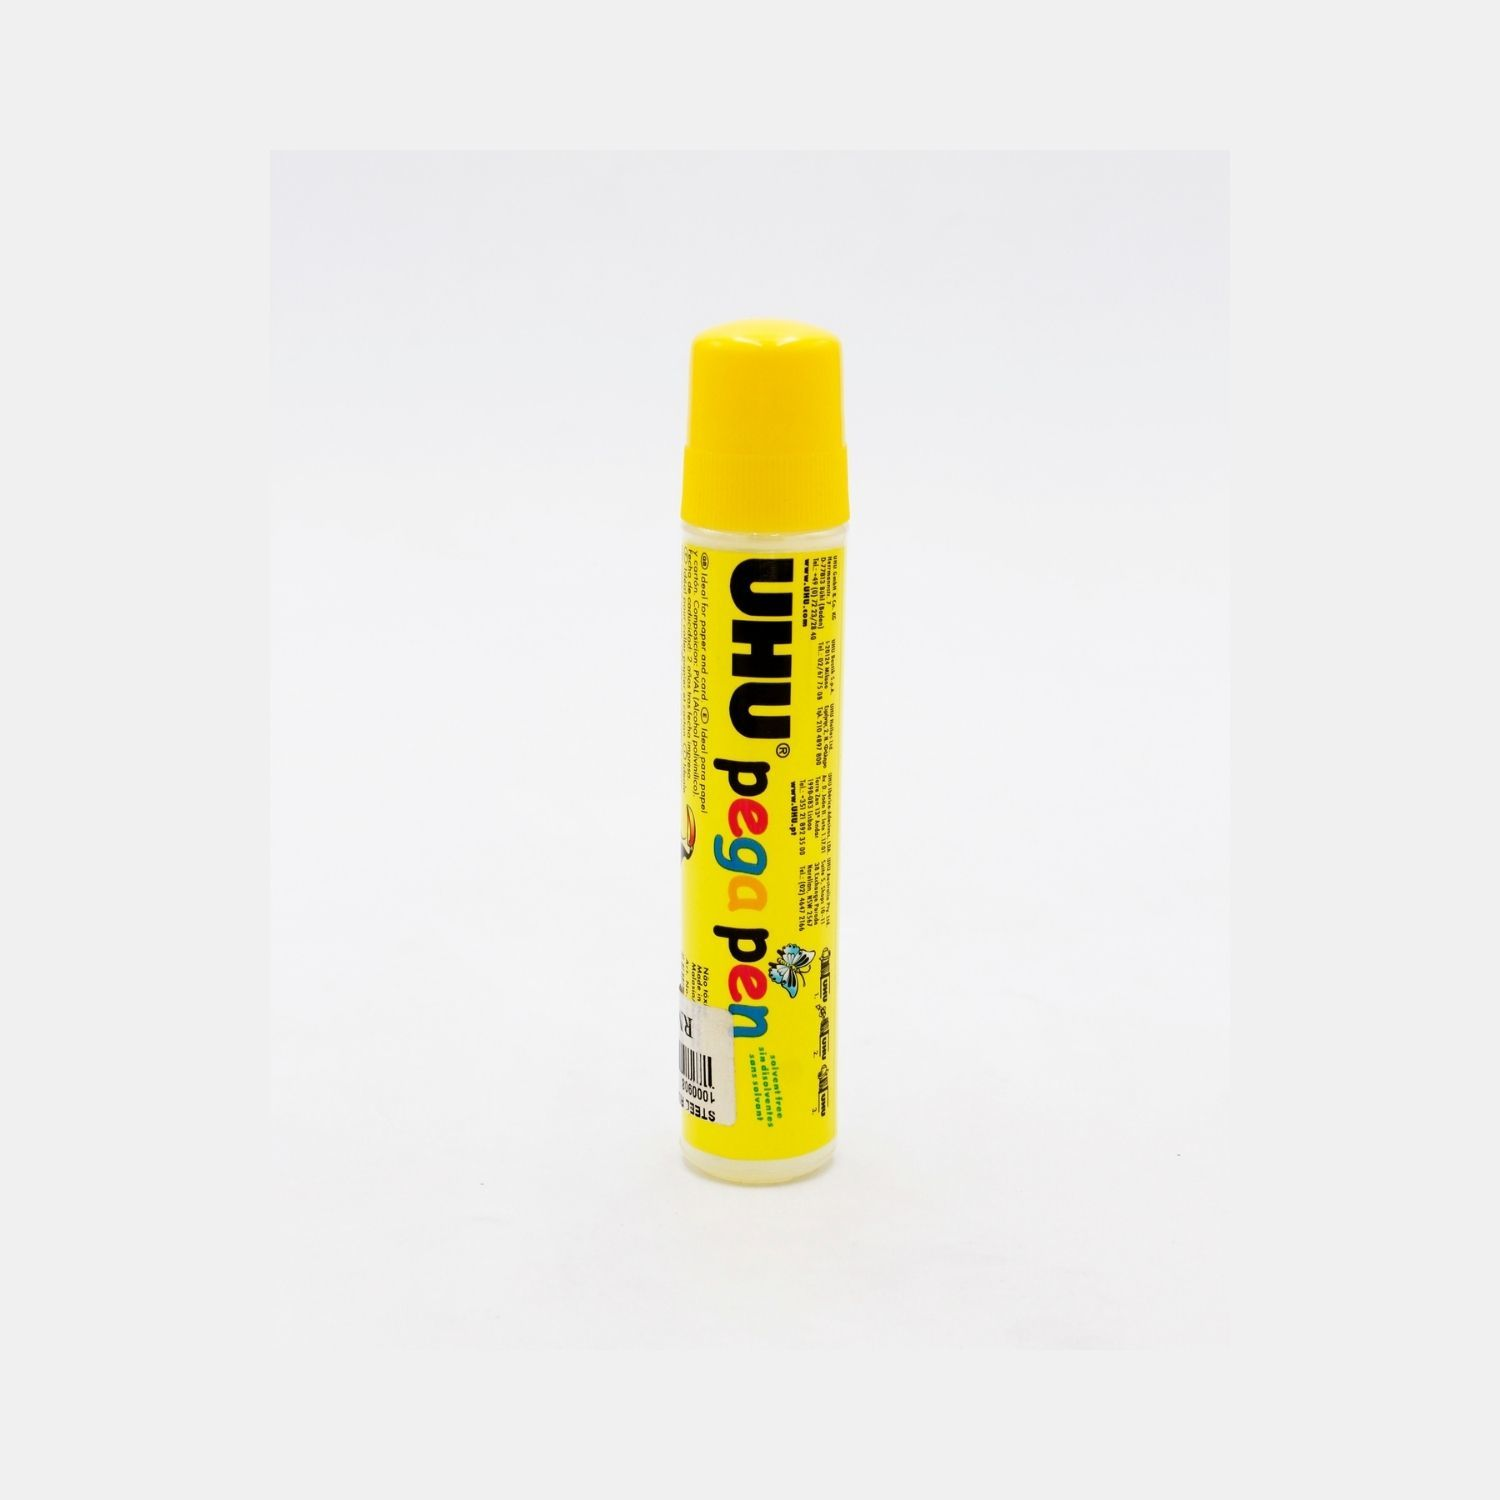 UHU Glue Pen 50ml.jpg